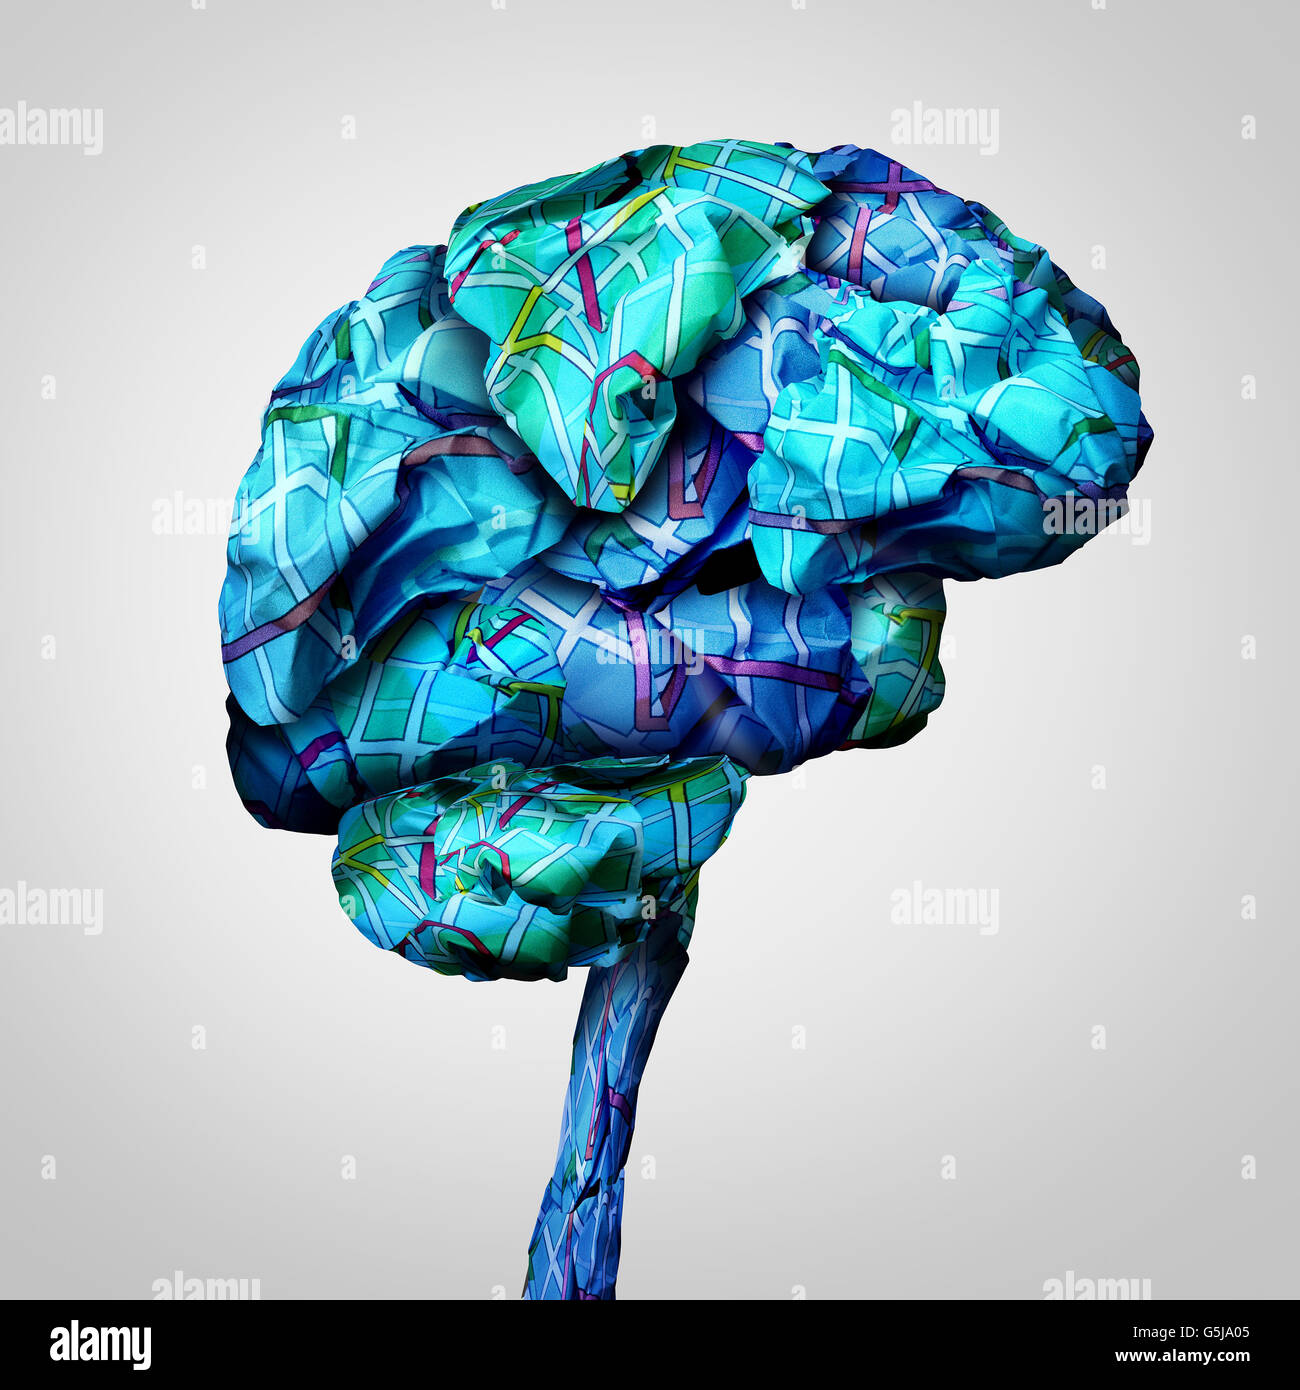 Brain mapping mental health concept and psychology challenge symbol or brainstorming icon as a group of crumpled - Stock Image